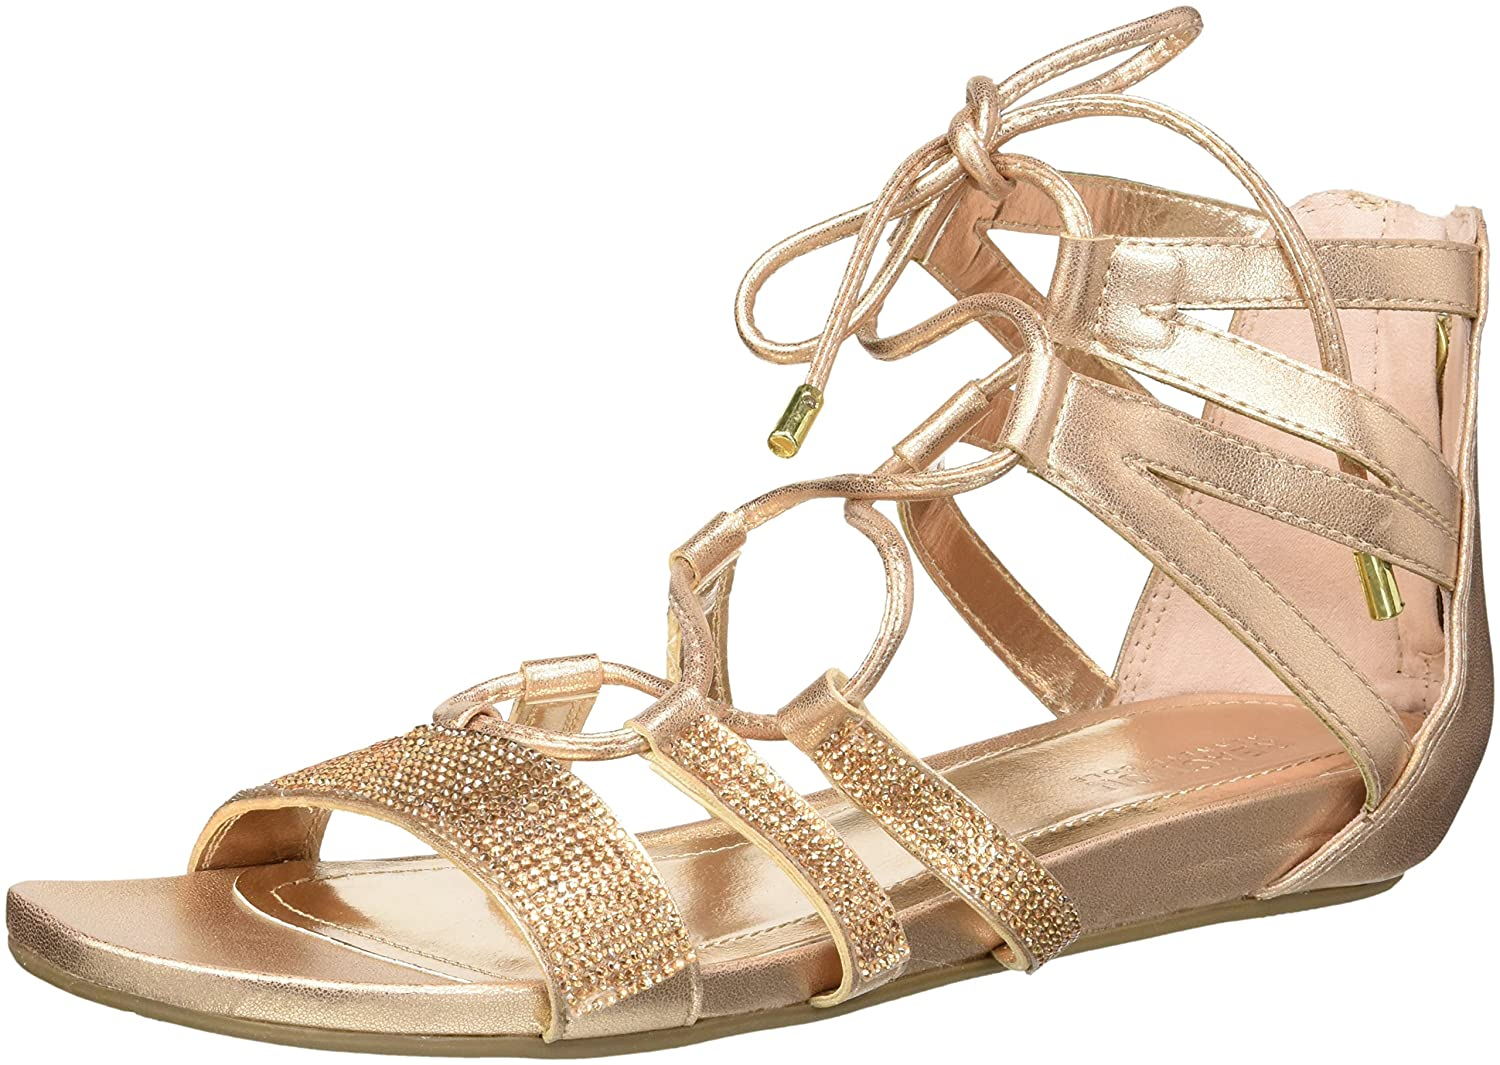 Women's Gold Gladiator Lace-Up Sandal by Kenneth Cole - DeluxeAdultCostumes.com